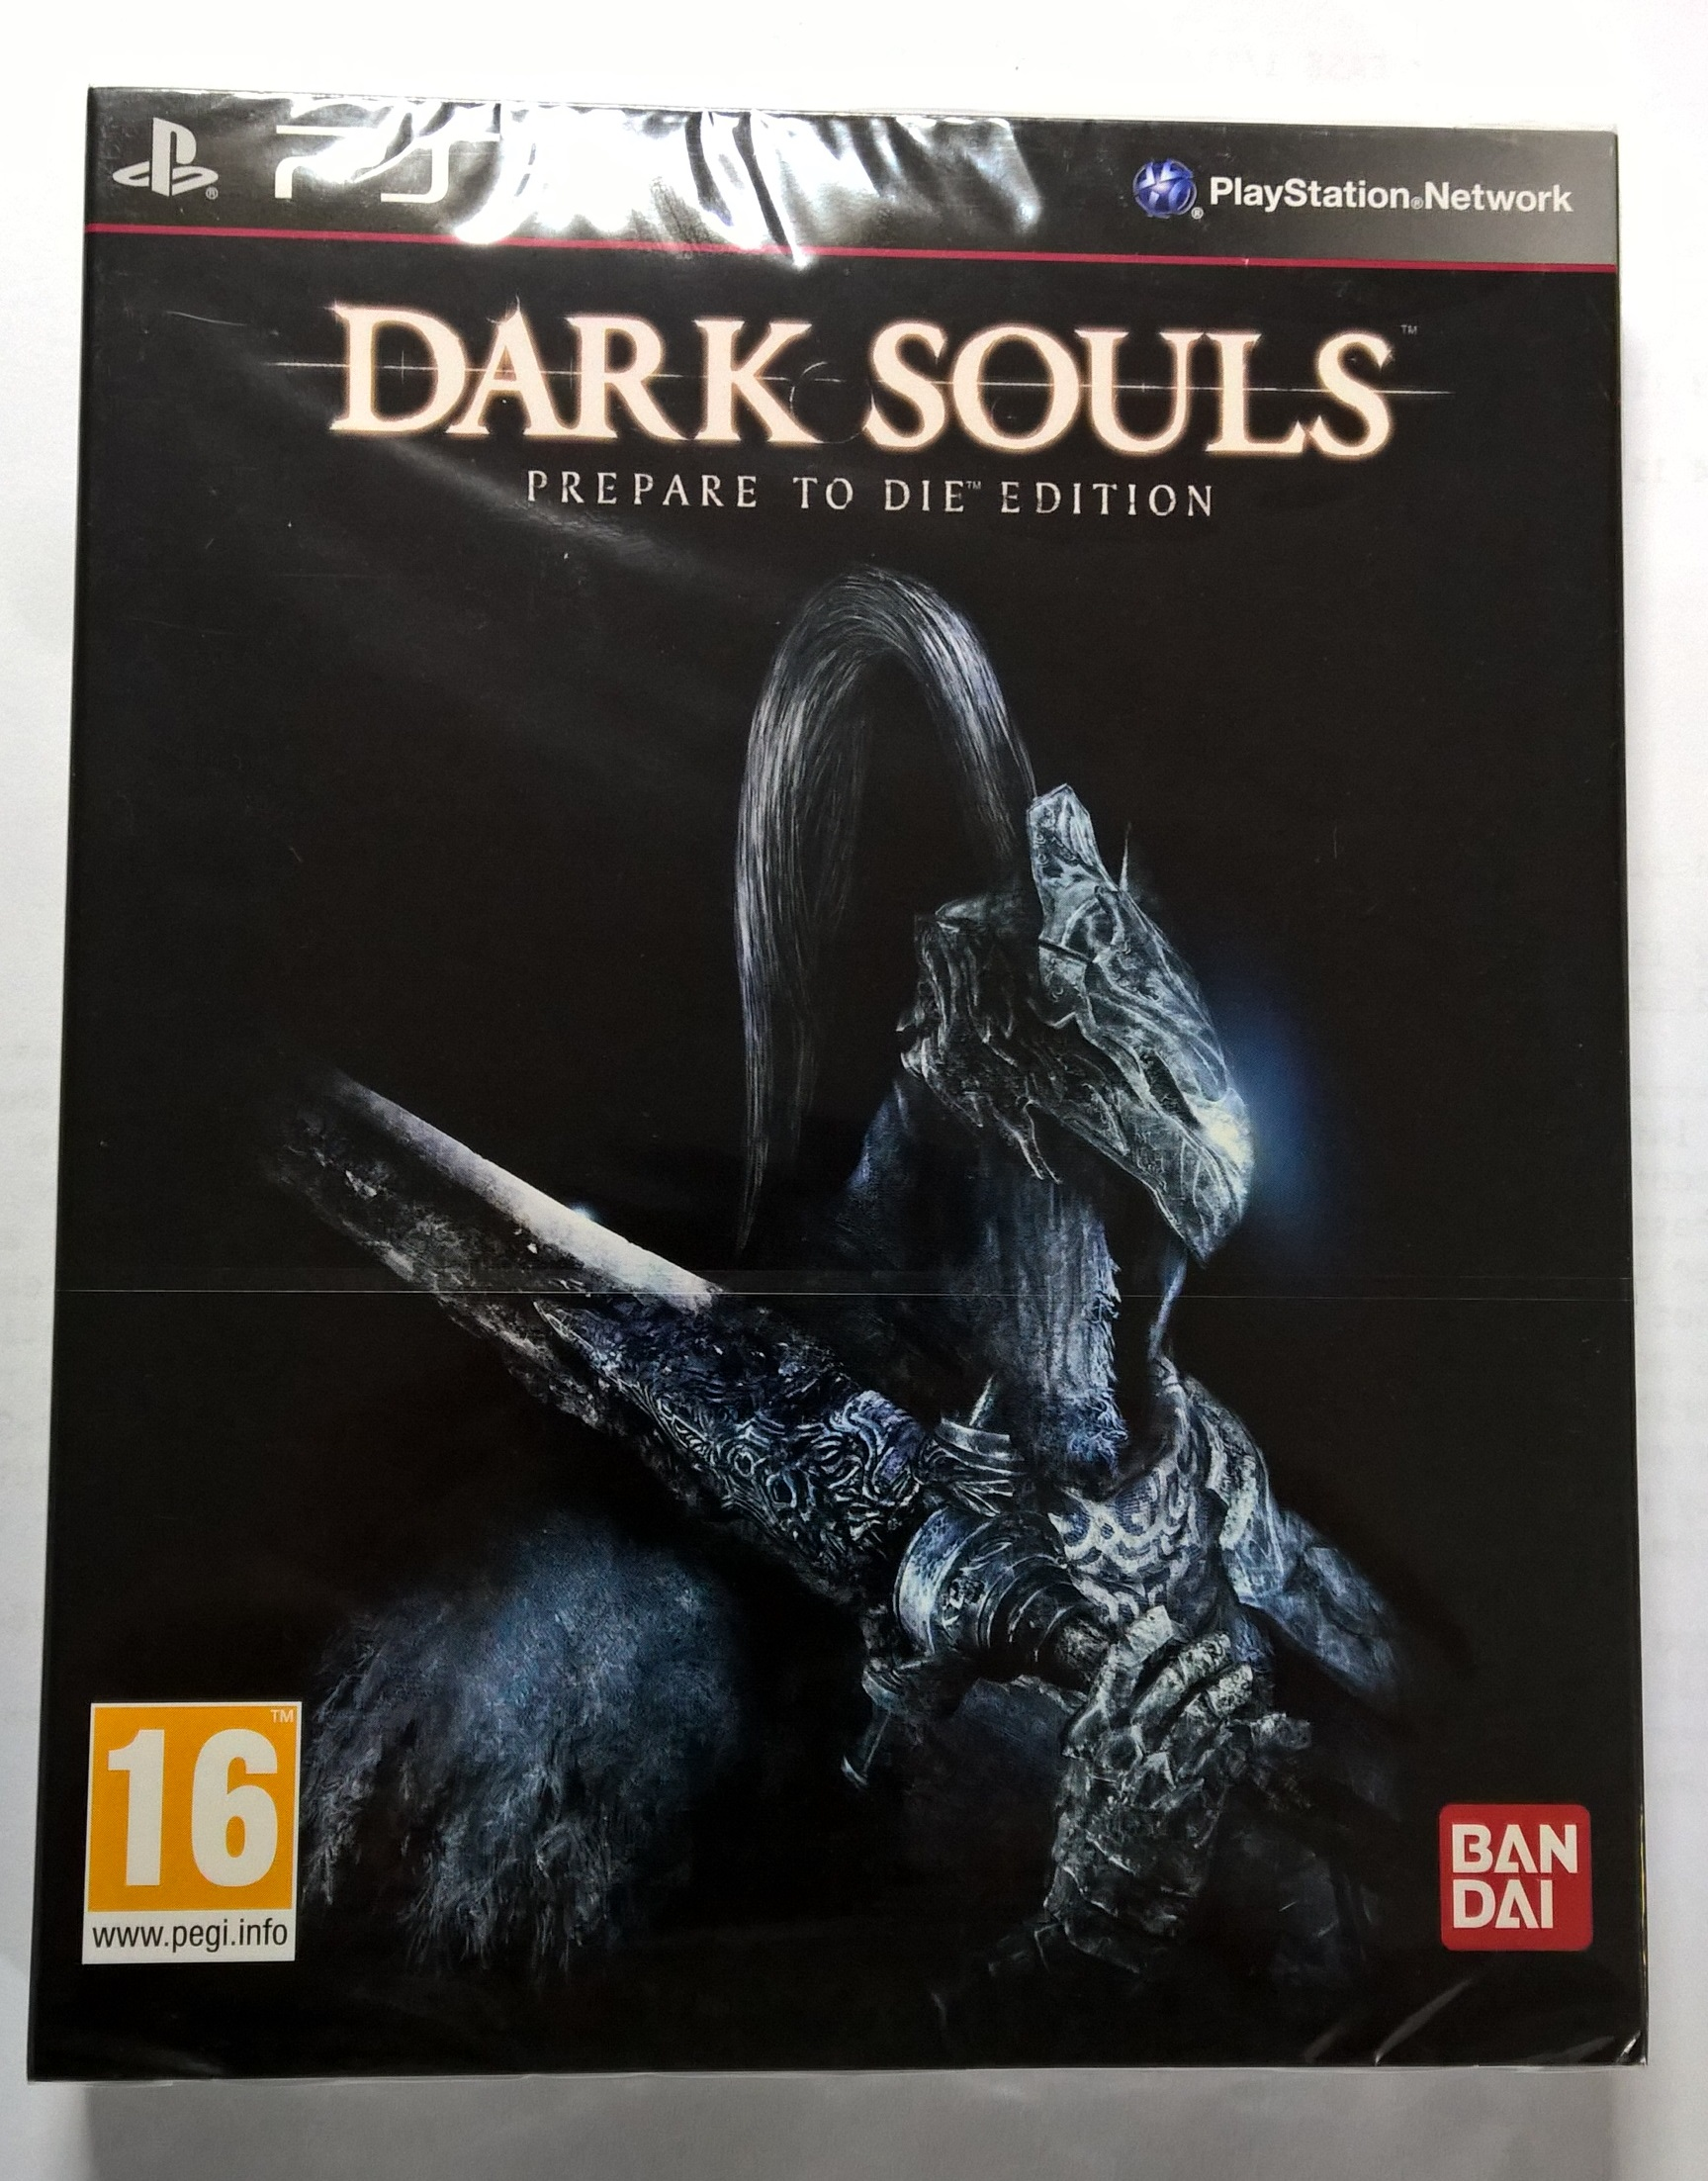 Edition For Ps3 Dark Souls Prepare To Die Steelbook Edition Ps3 Collectors